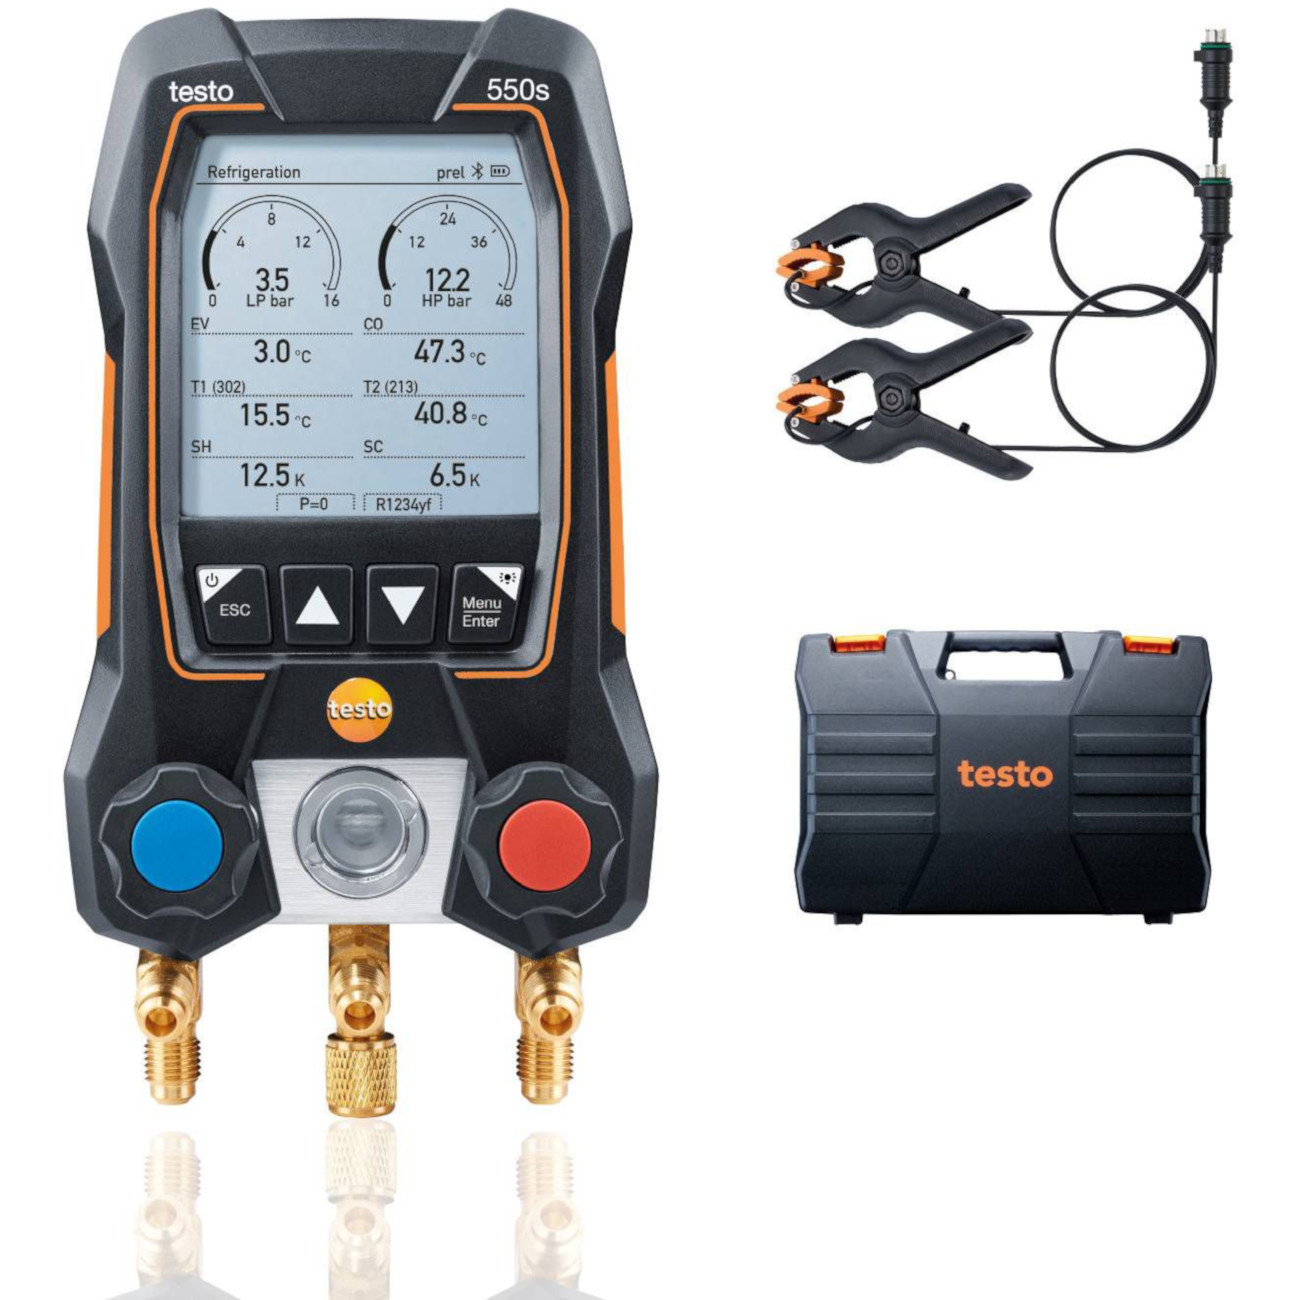 Testo 550s Basic Kit Smart Digital Manifold with Wired Temperature Clamps Bluetooth and 2-Way Valve Block - Part 0564 5501 01